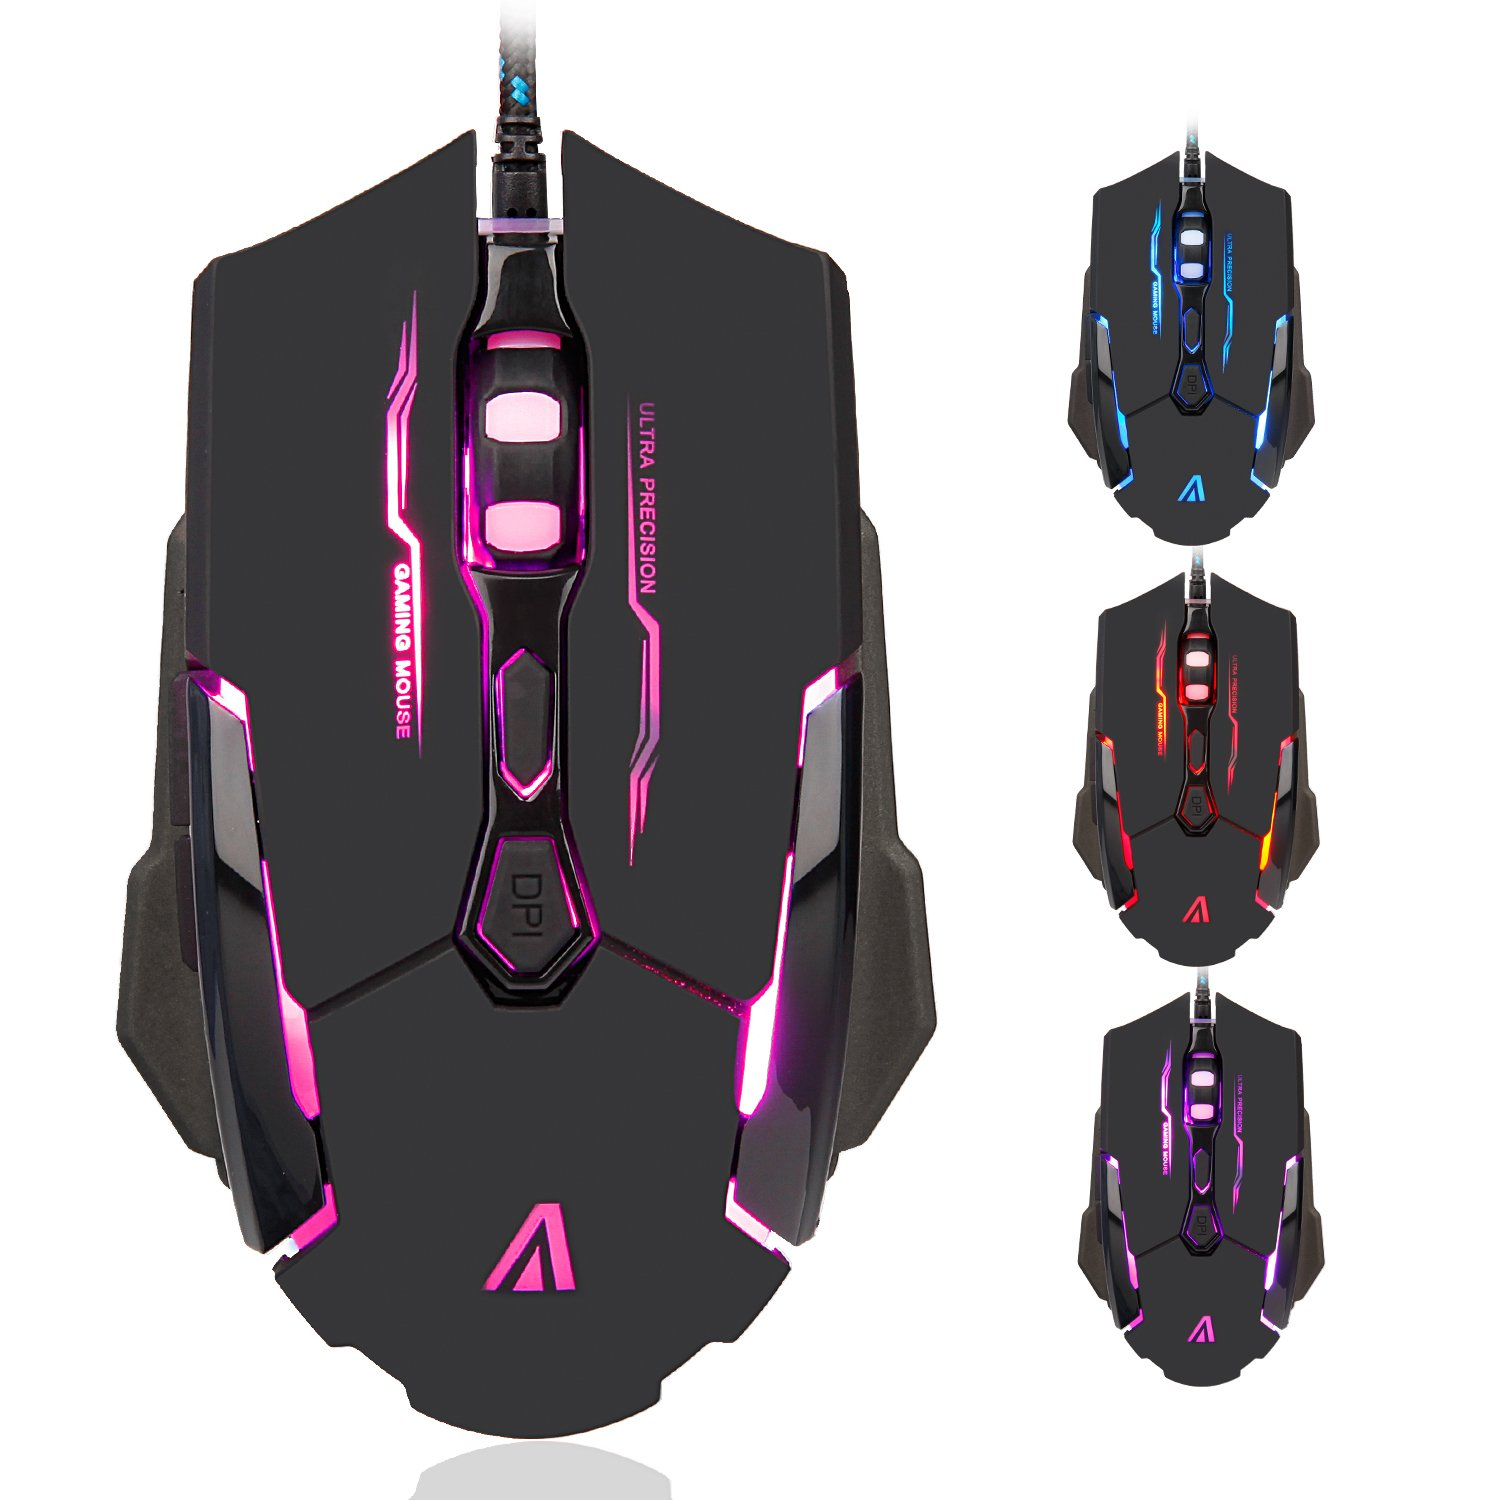 Amazon.com: JAR-OWL A1 Gaming Mouse 6 Buttons 3200 DPI Professional ...